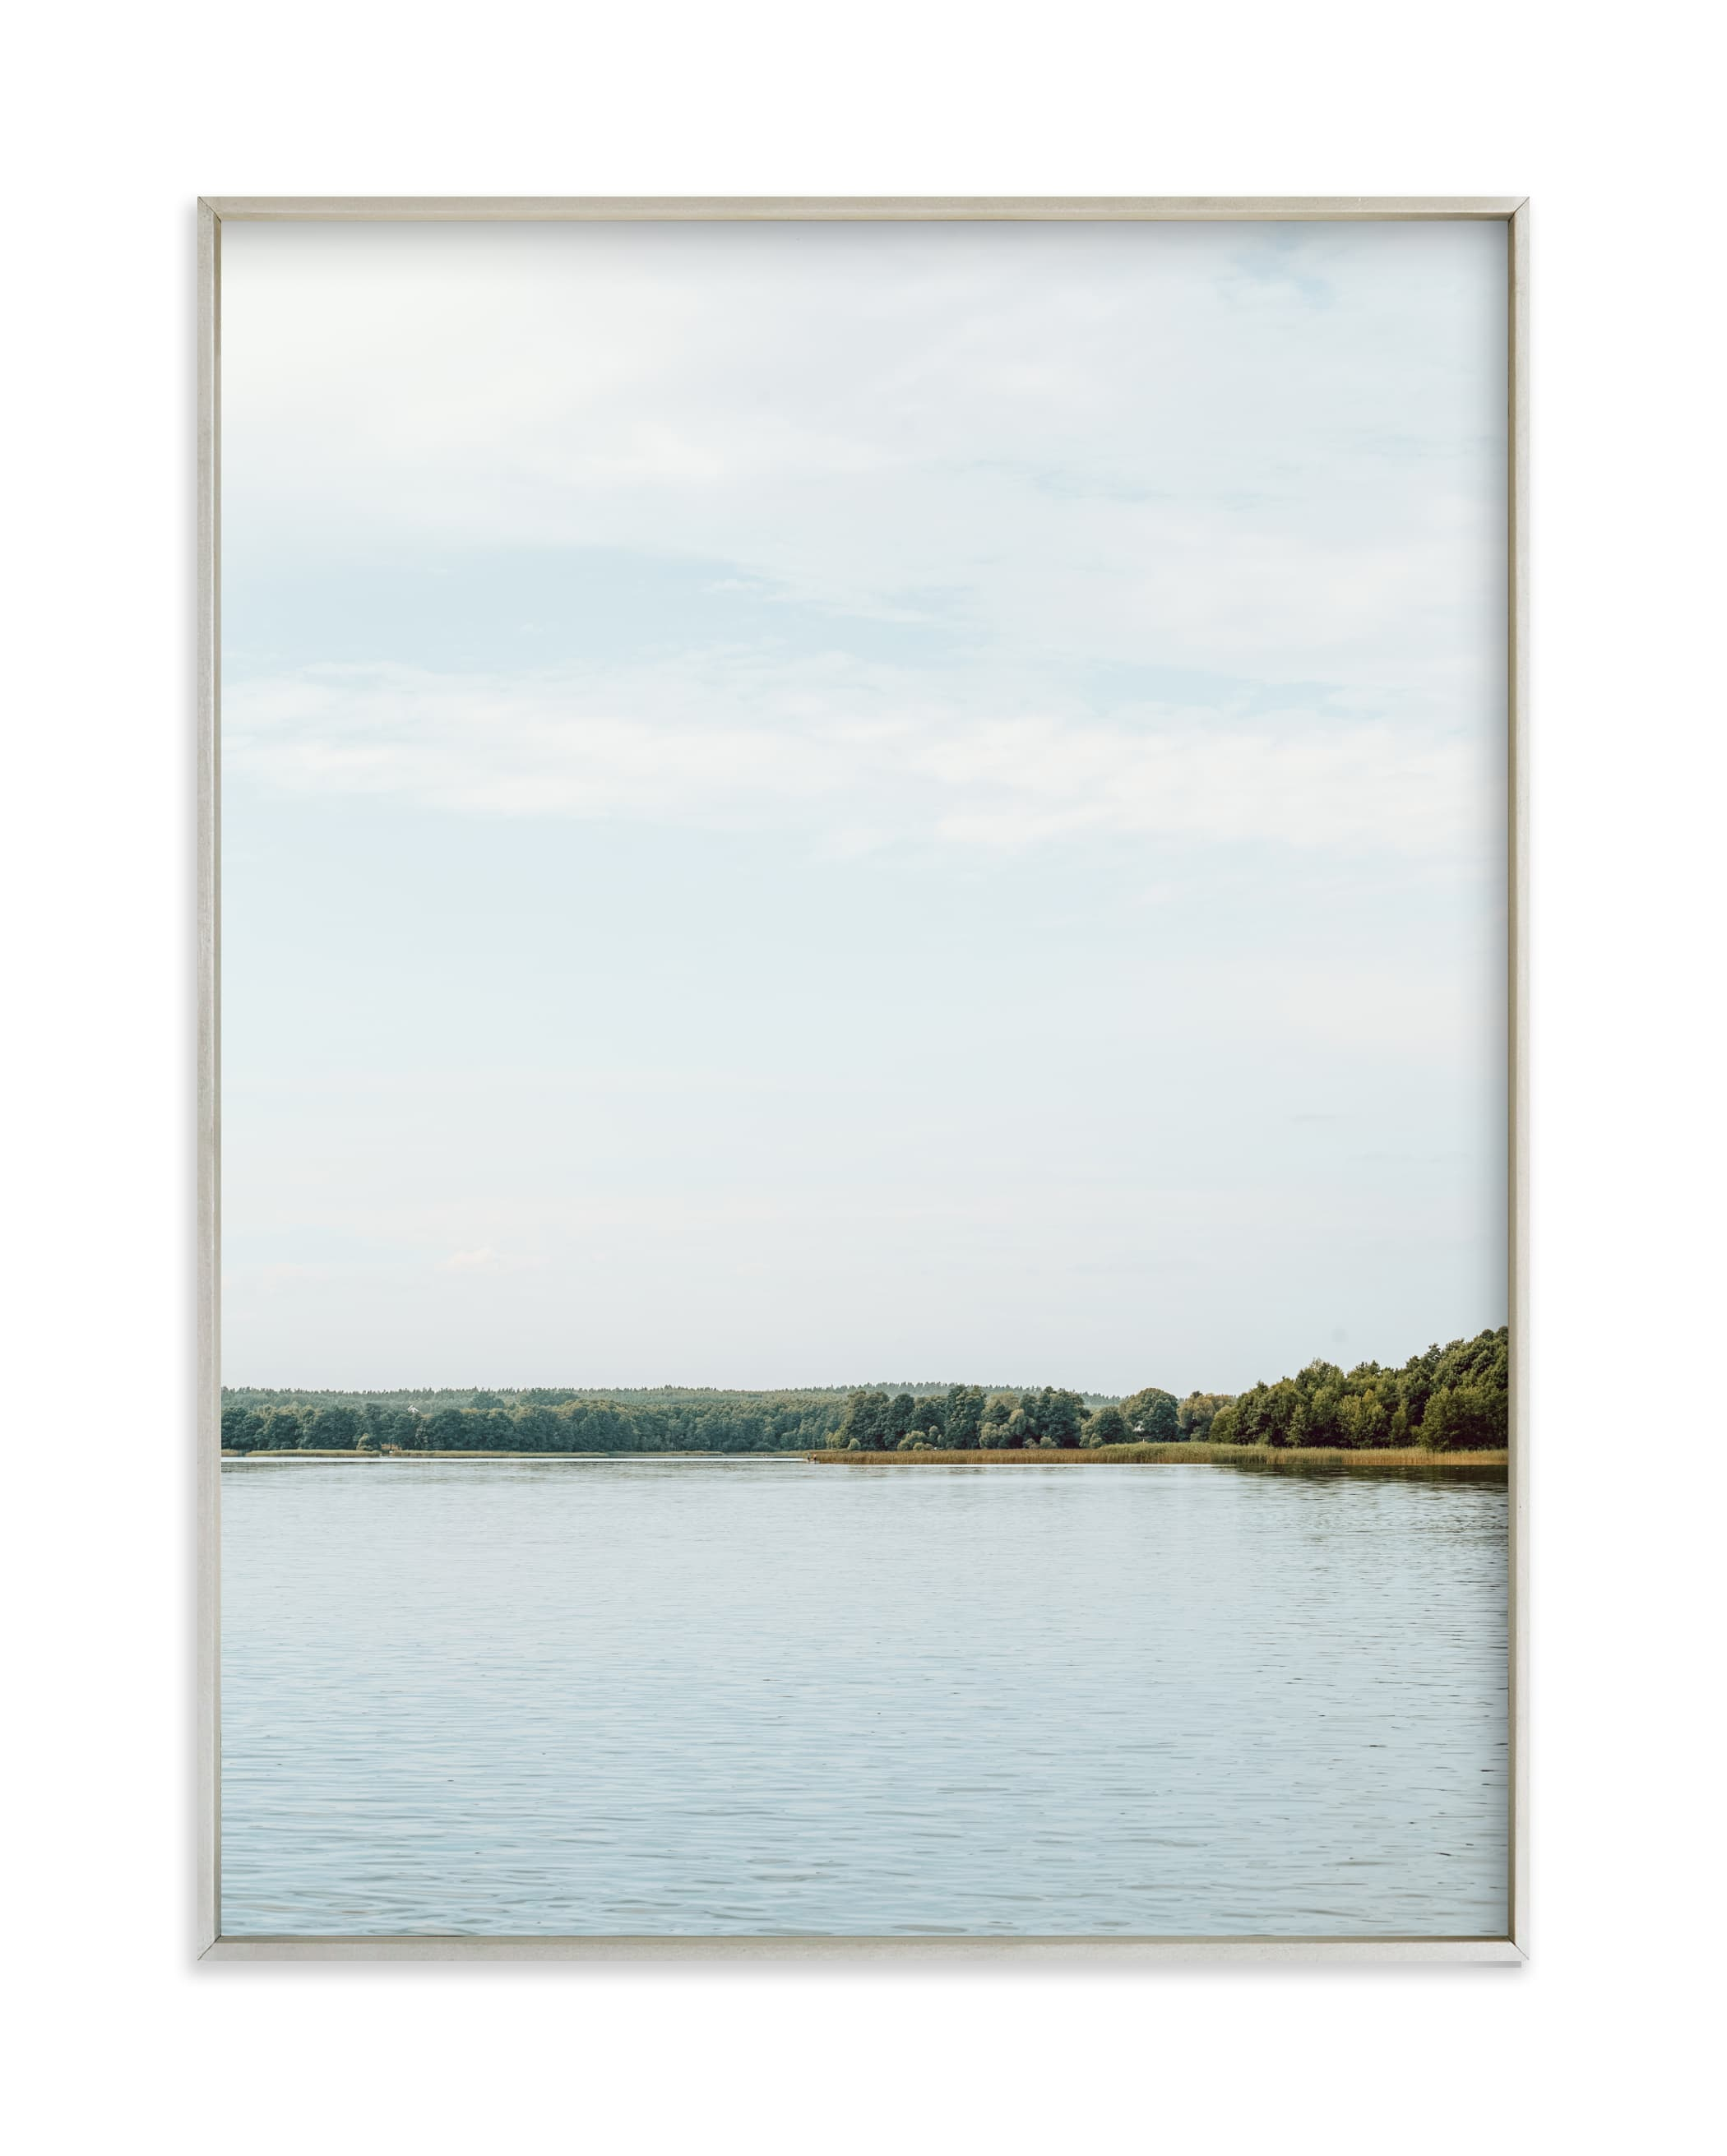 """""""Peaceful lake III"""" by Lying on the grass in beautiful frame options and a variety of sizes."""